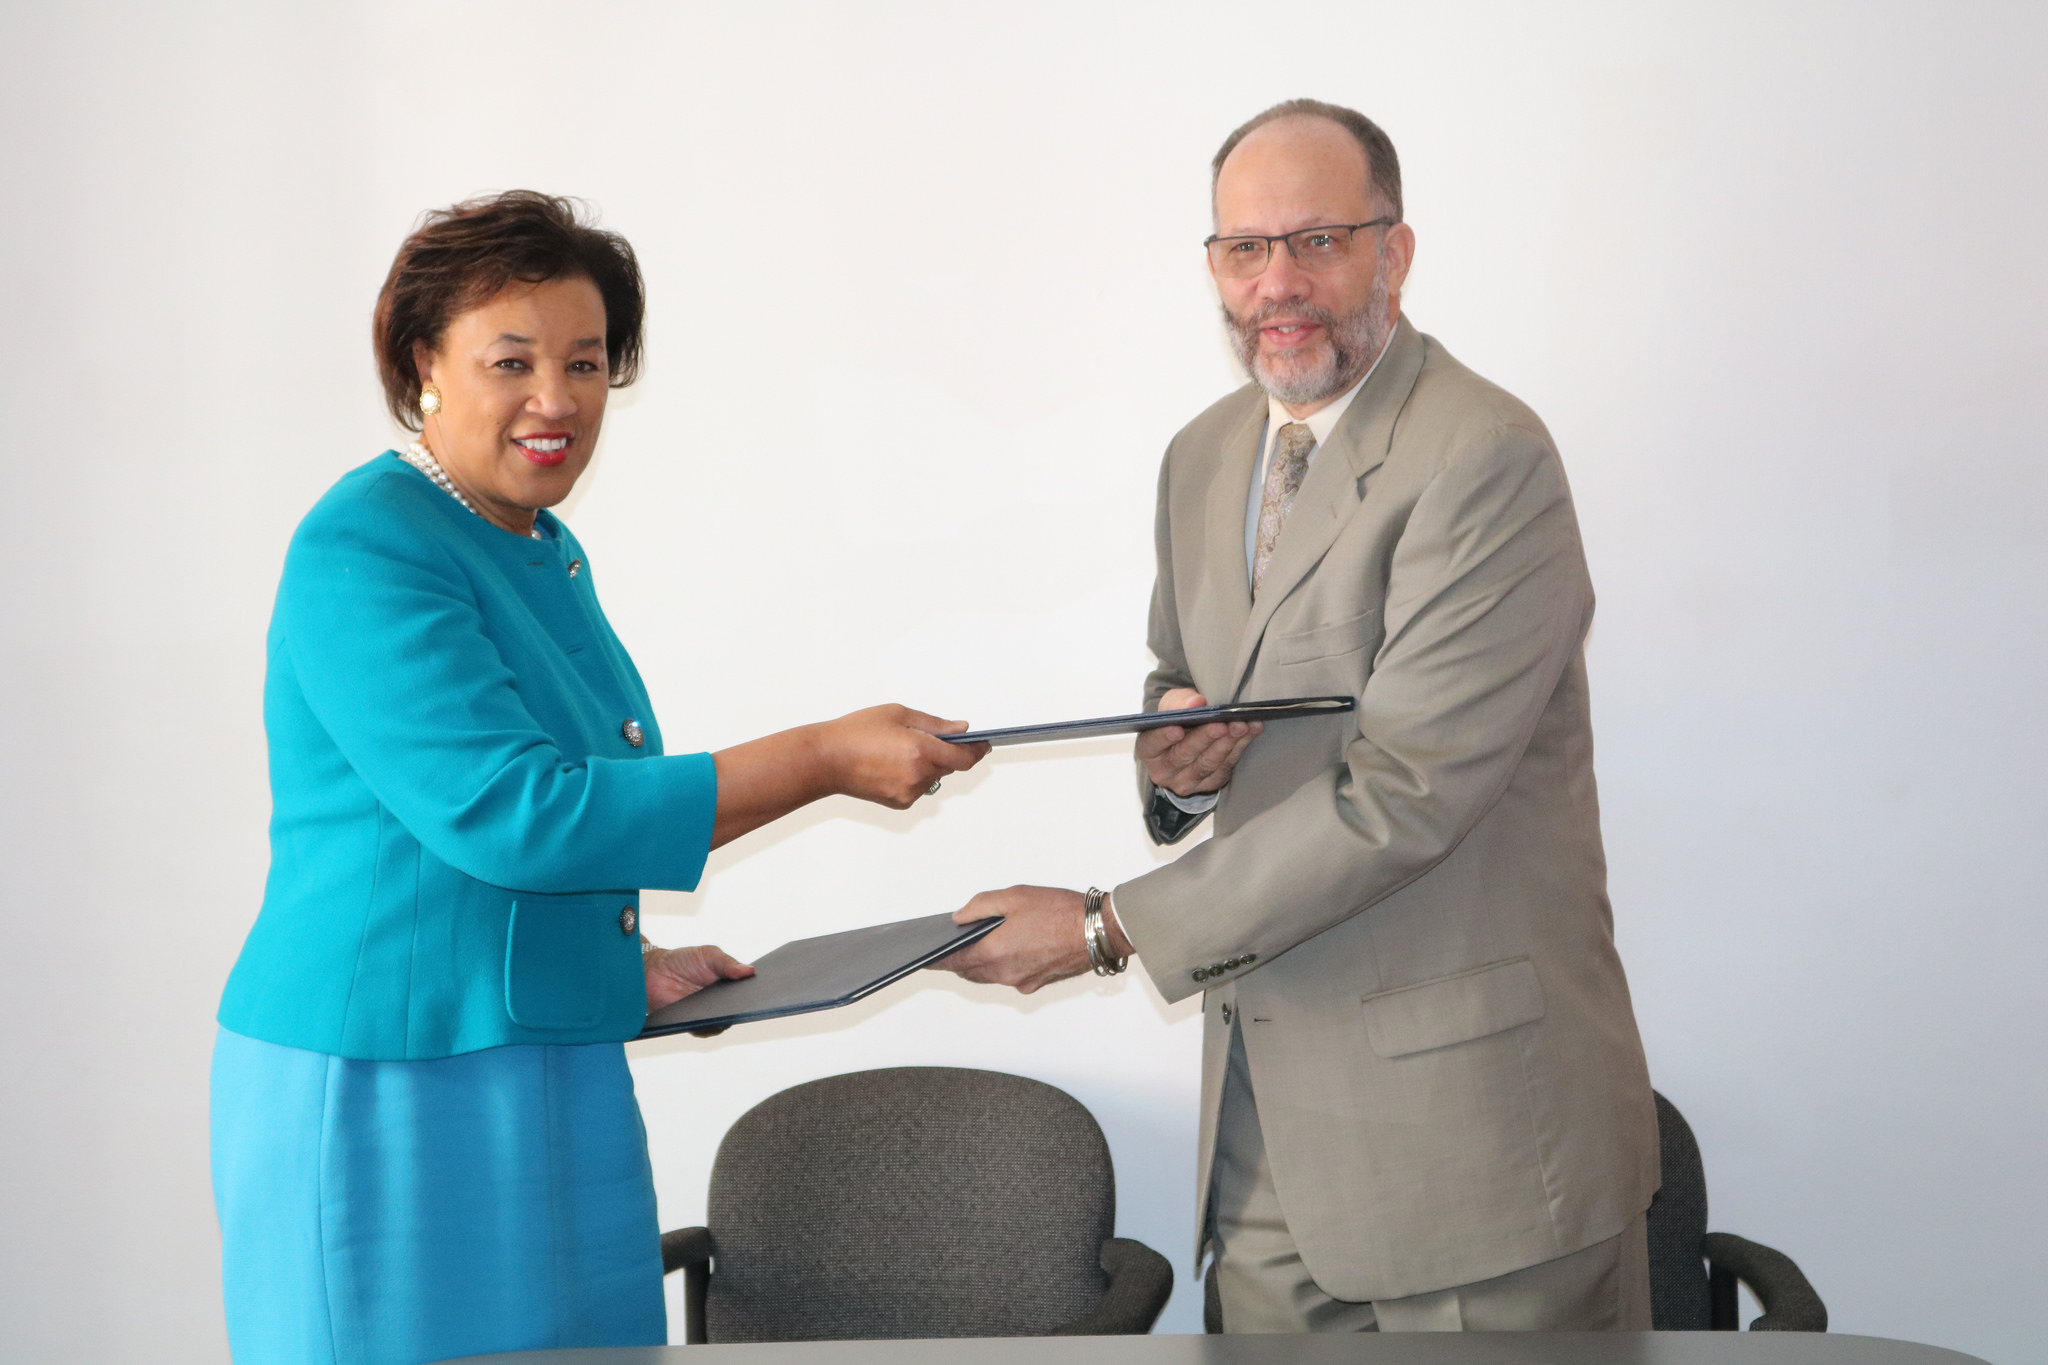 CARICOM SG (r) and Commonwealth SG (l) exchange copies of the MOU